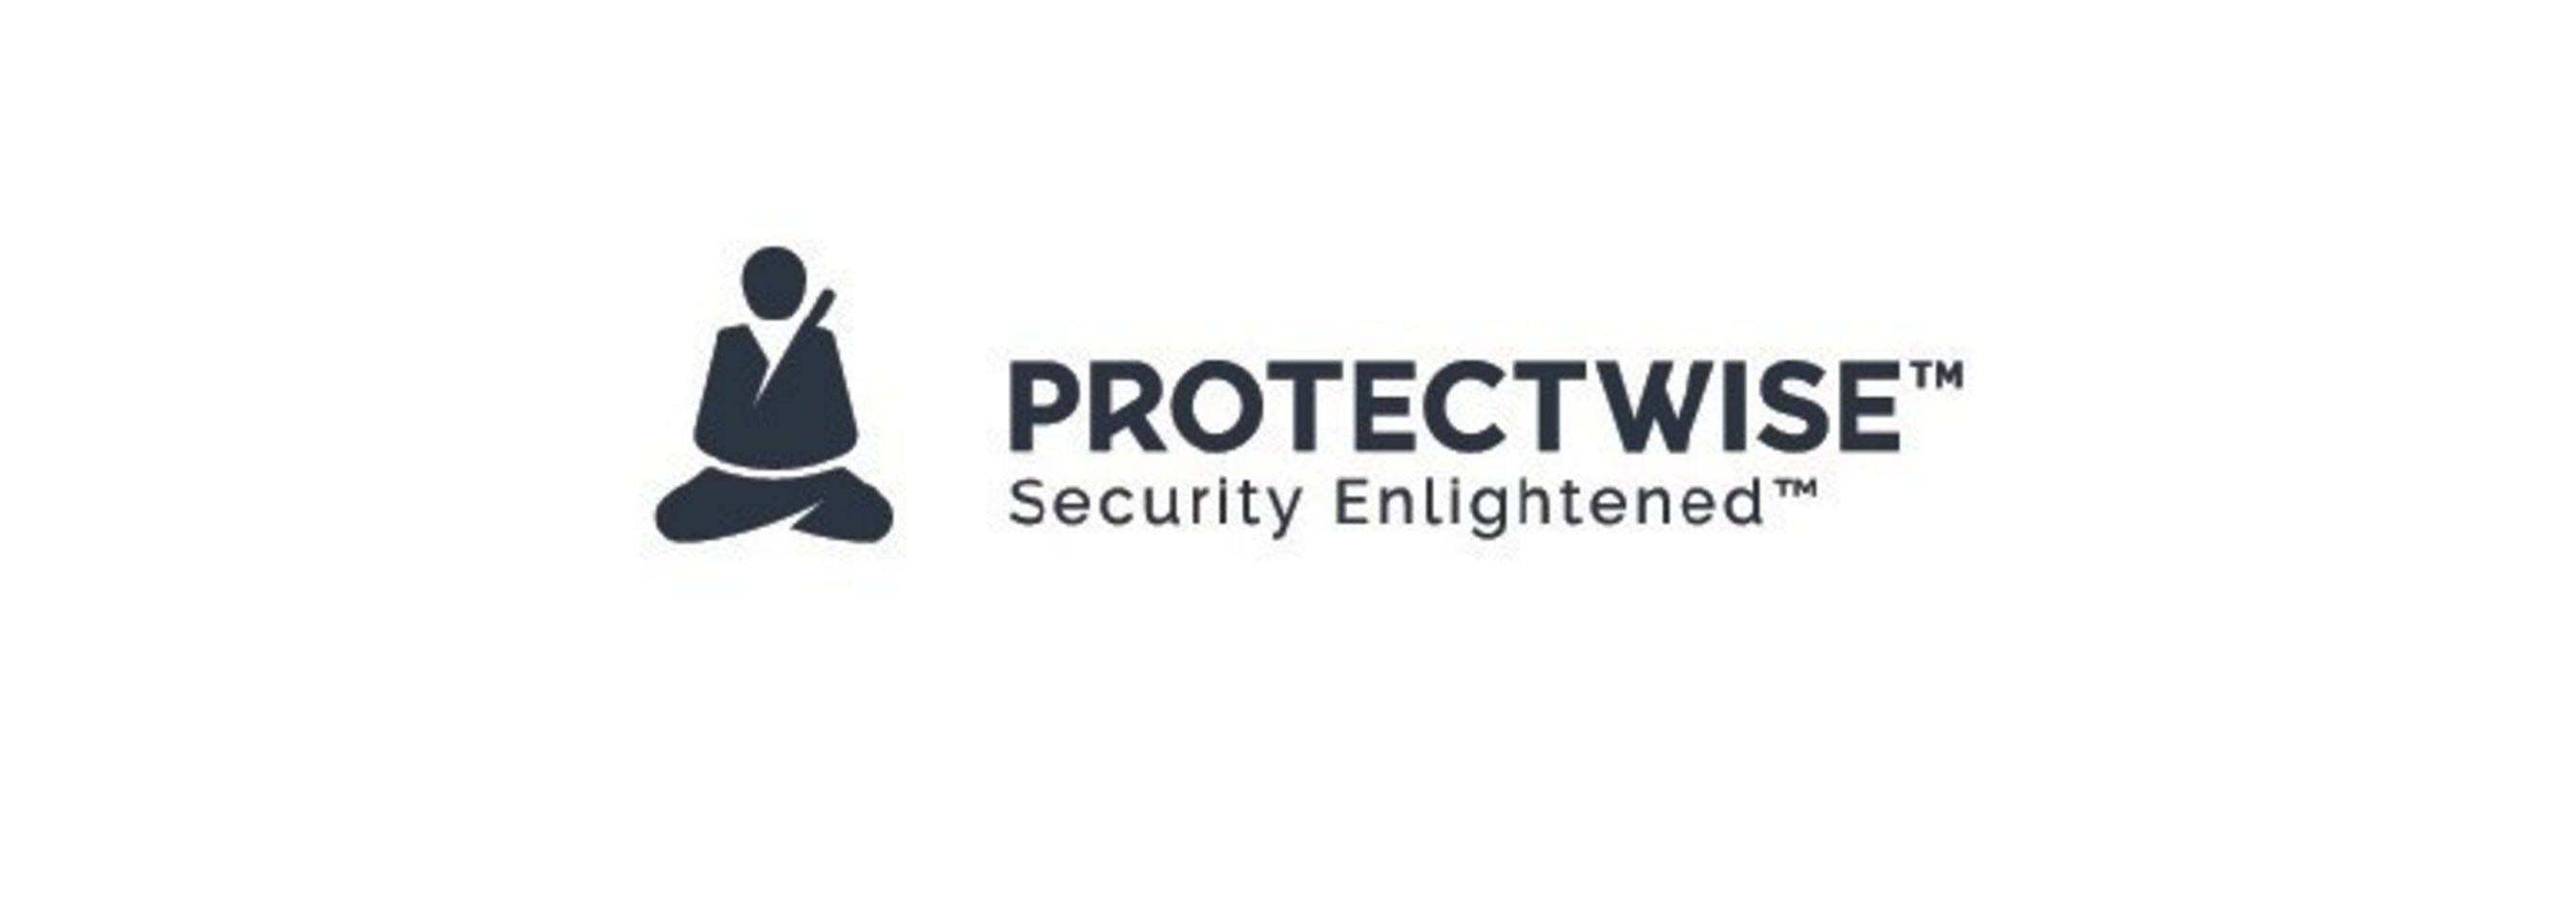 ProtectWise Named A Gartner 2015 'Cool Vendor' In Cloud Security Services